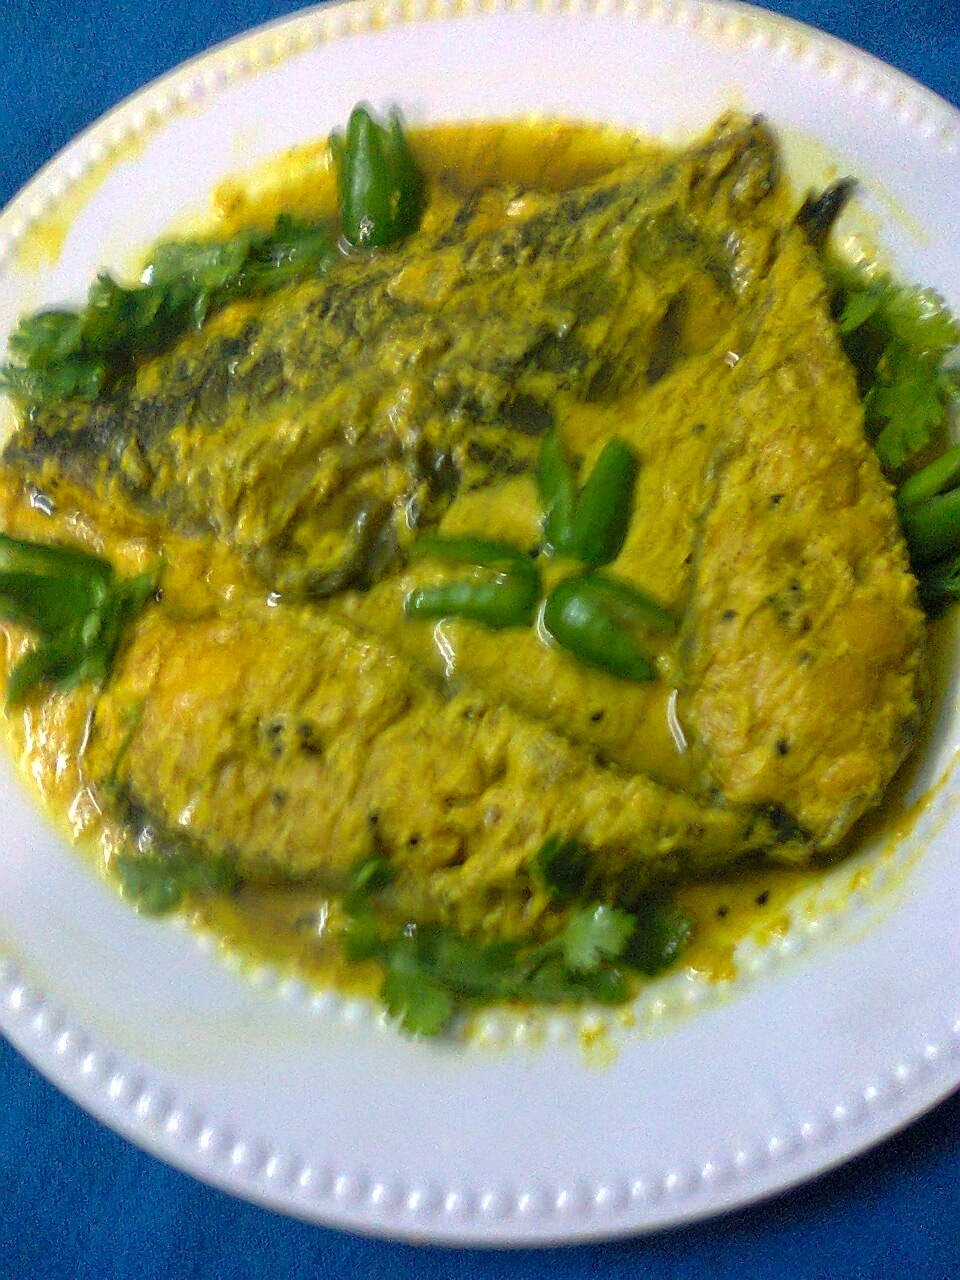 Boal Fish (Wallago) In Mustard Sauce/Boal Macher Gravy